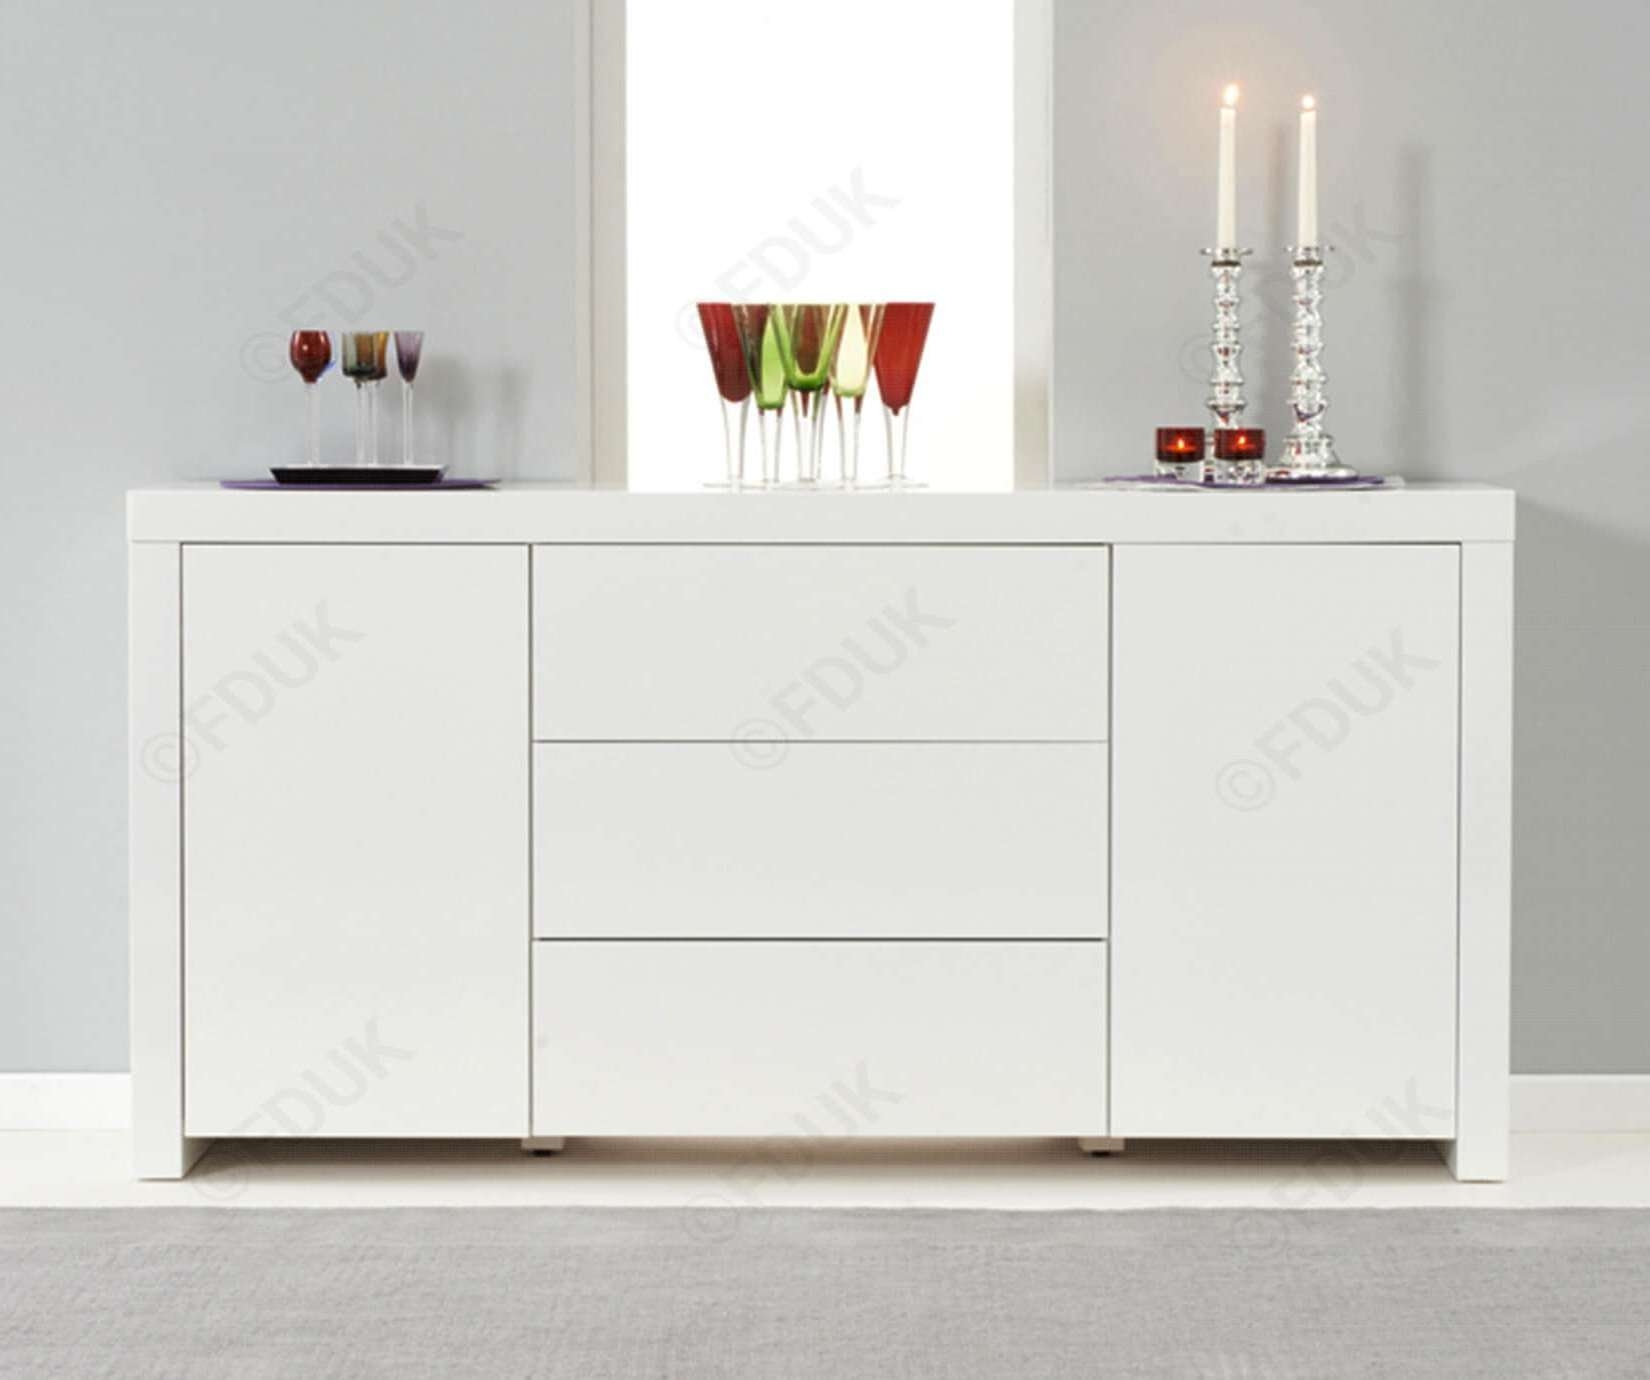 20 Photos High Gloss Sideboards Regarding White High Gloss Sideboards (View 1 of 20)